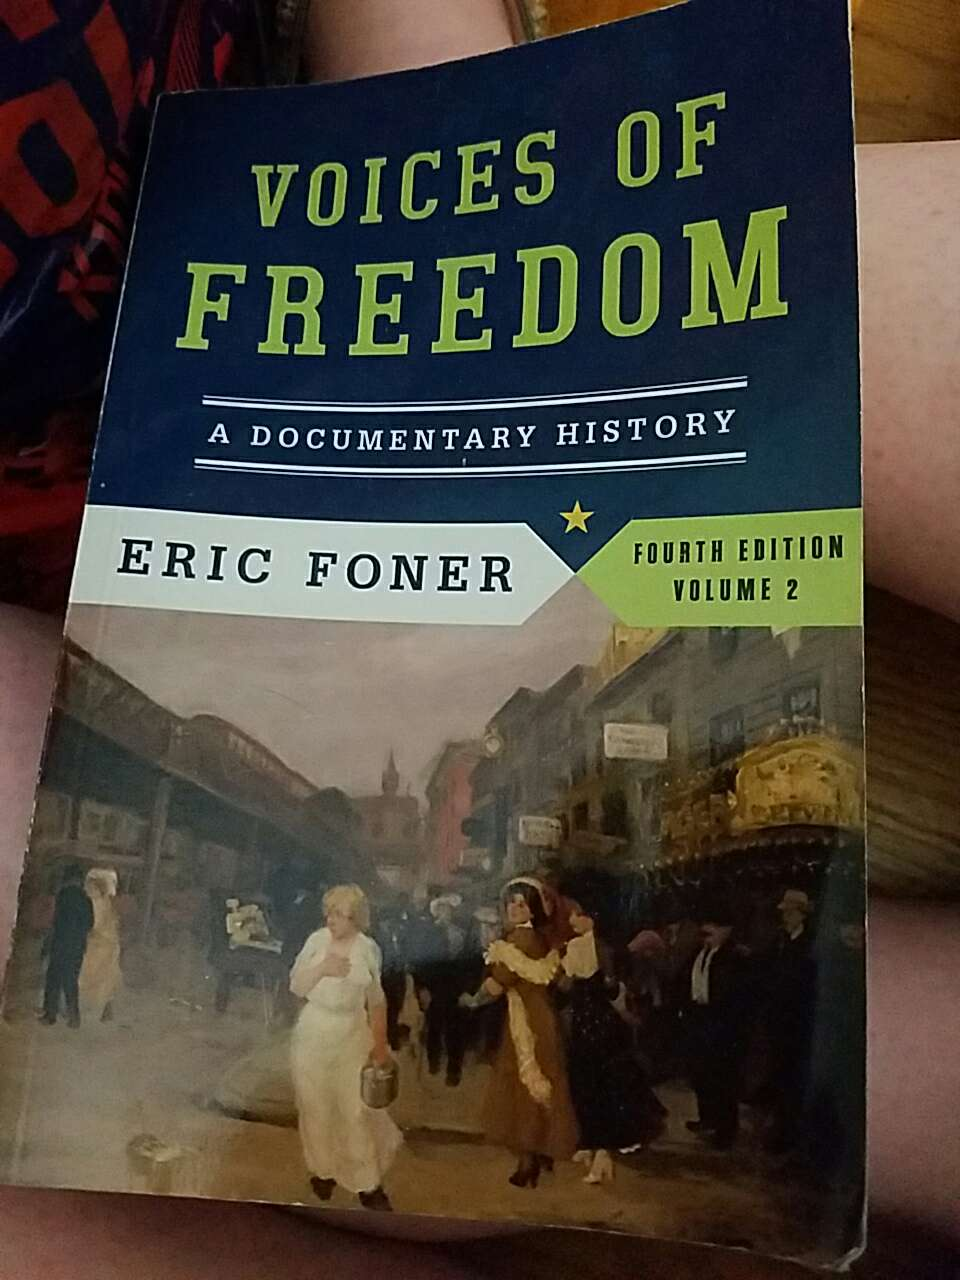 voices of freedom eric foner This item: voices of freedom: a documentary history (fourth edition) (vol 2) by eric foner paperback $2589 only 1 left in stock - order soon ships from and sold by walker bookstore.